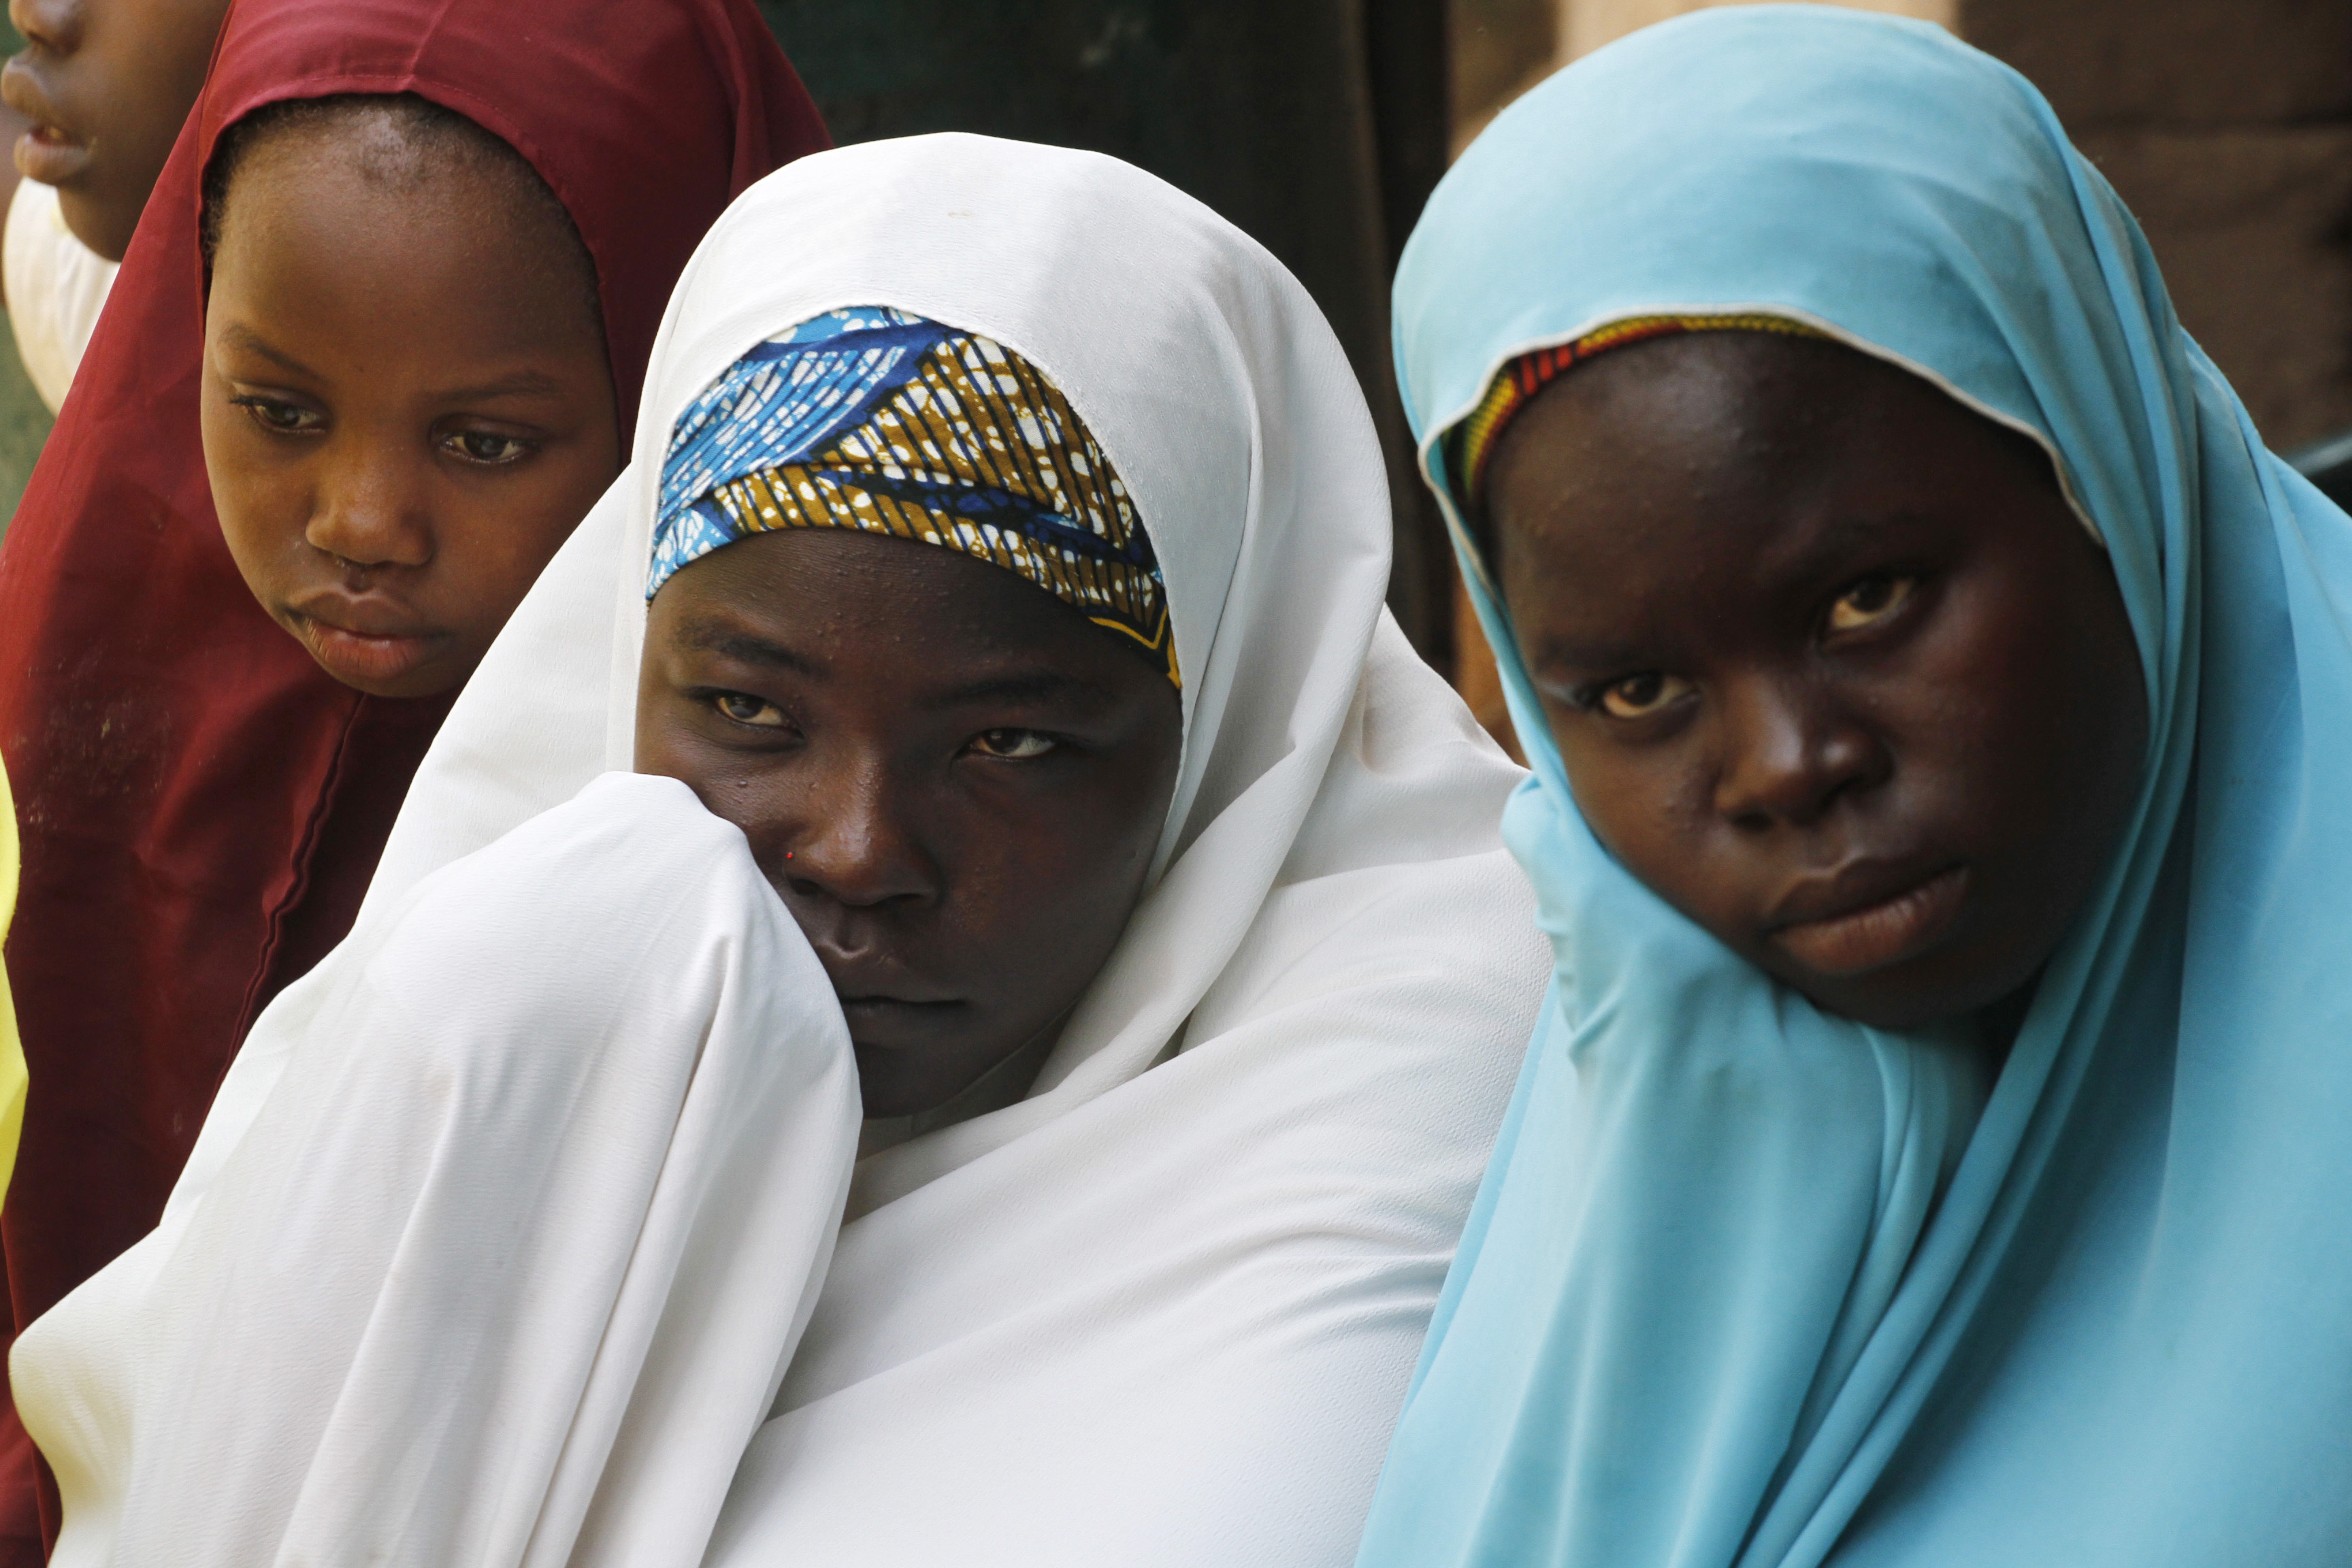 Internally displaced persons, who are victims of Boko Haram attacks, stay at the IDP camp for those fleeing violence from Boko Haram insurgents at Wurojuli, Gombe State Sept. 2, 2014.